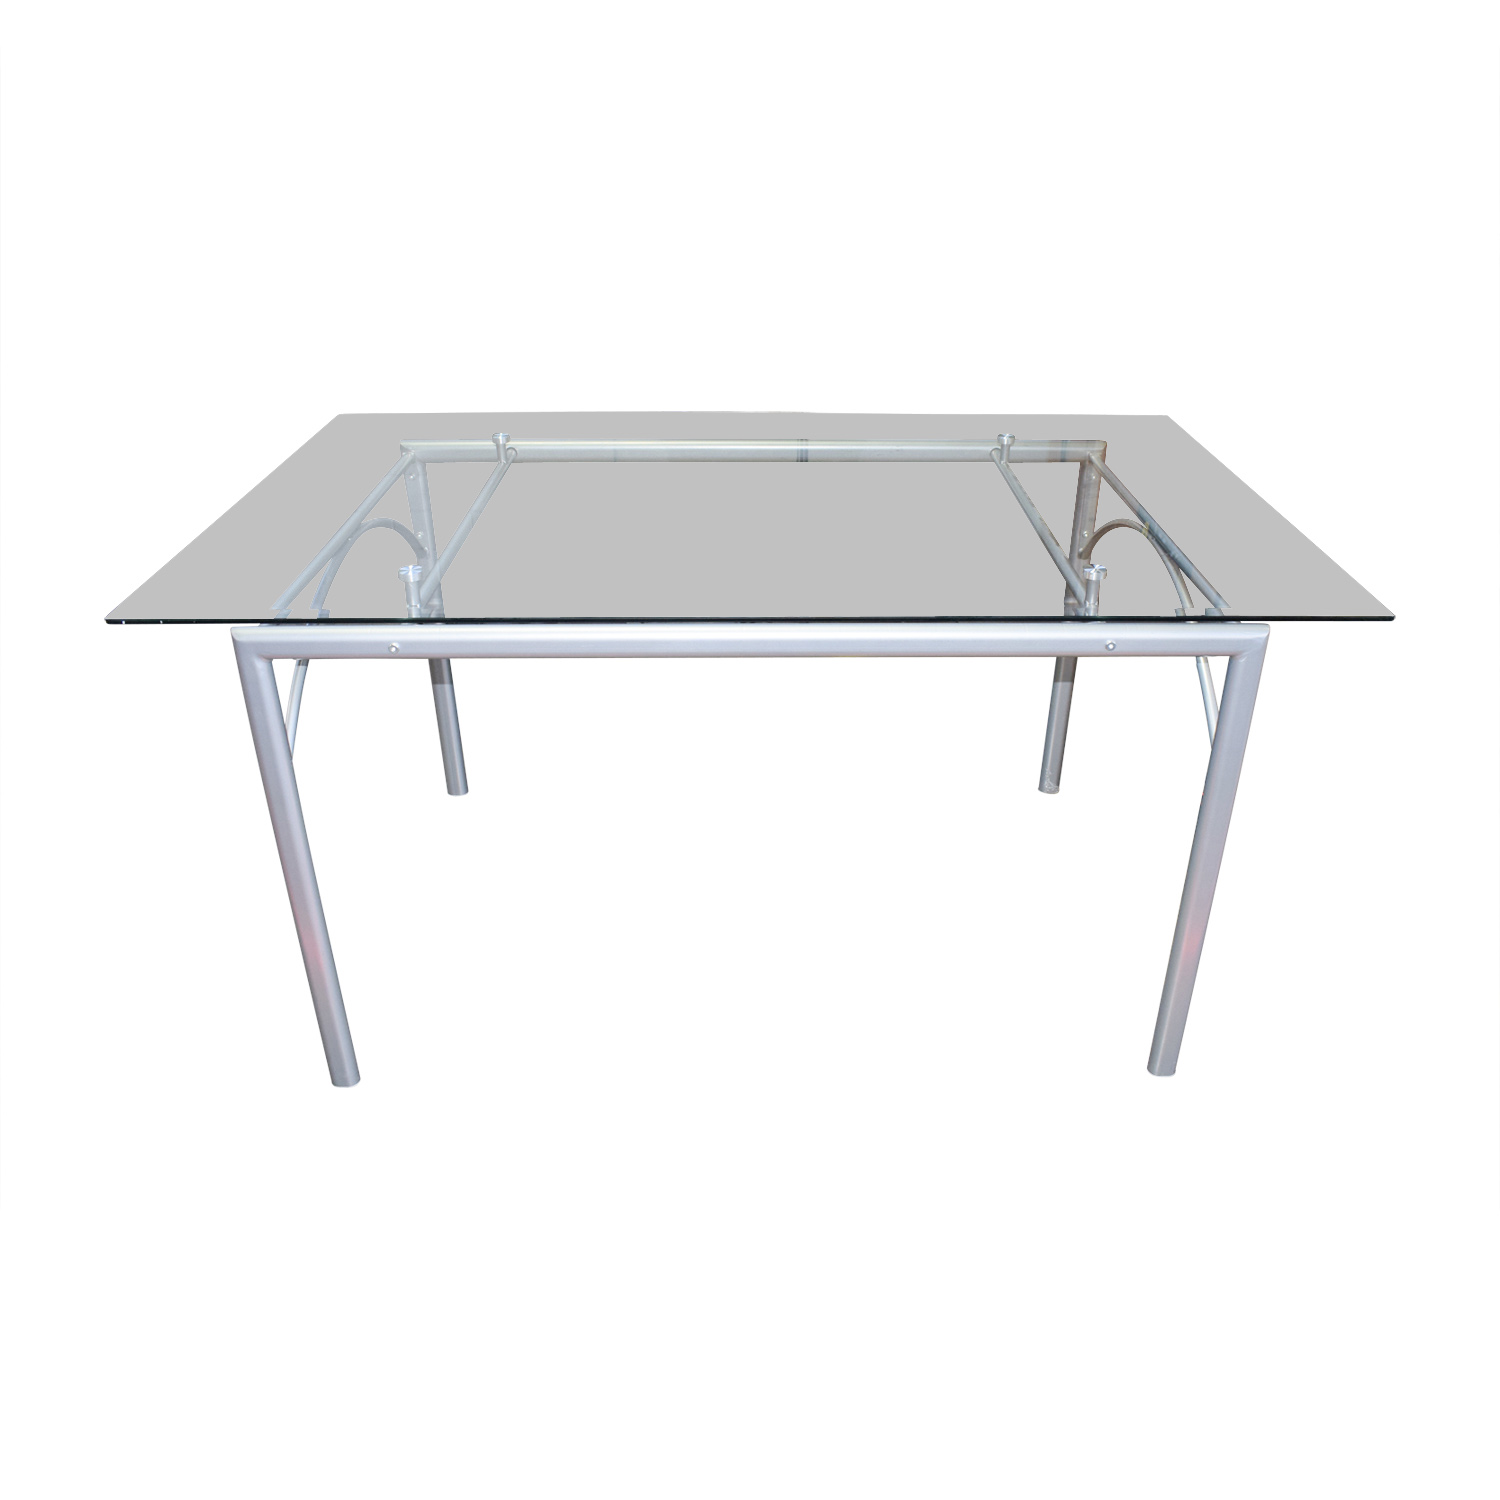 Coaster Coaster Rectangular Glass and Metal Dining Table second hand